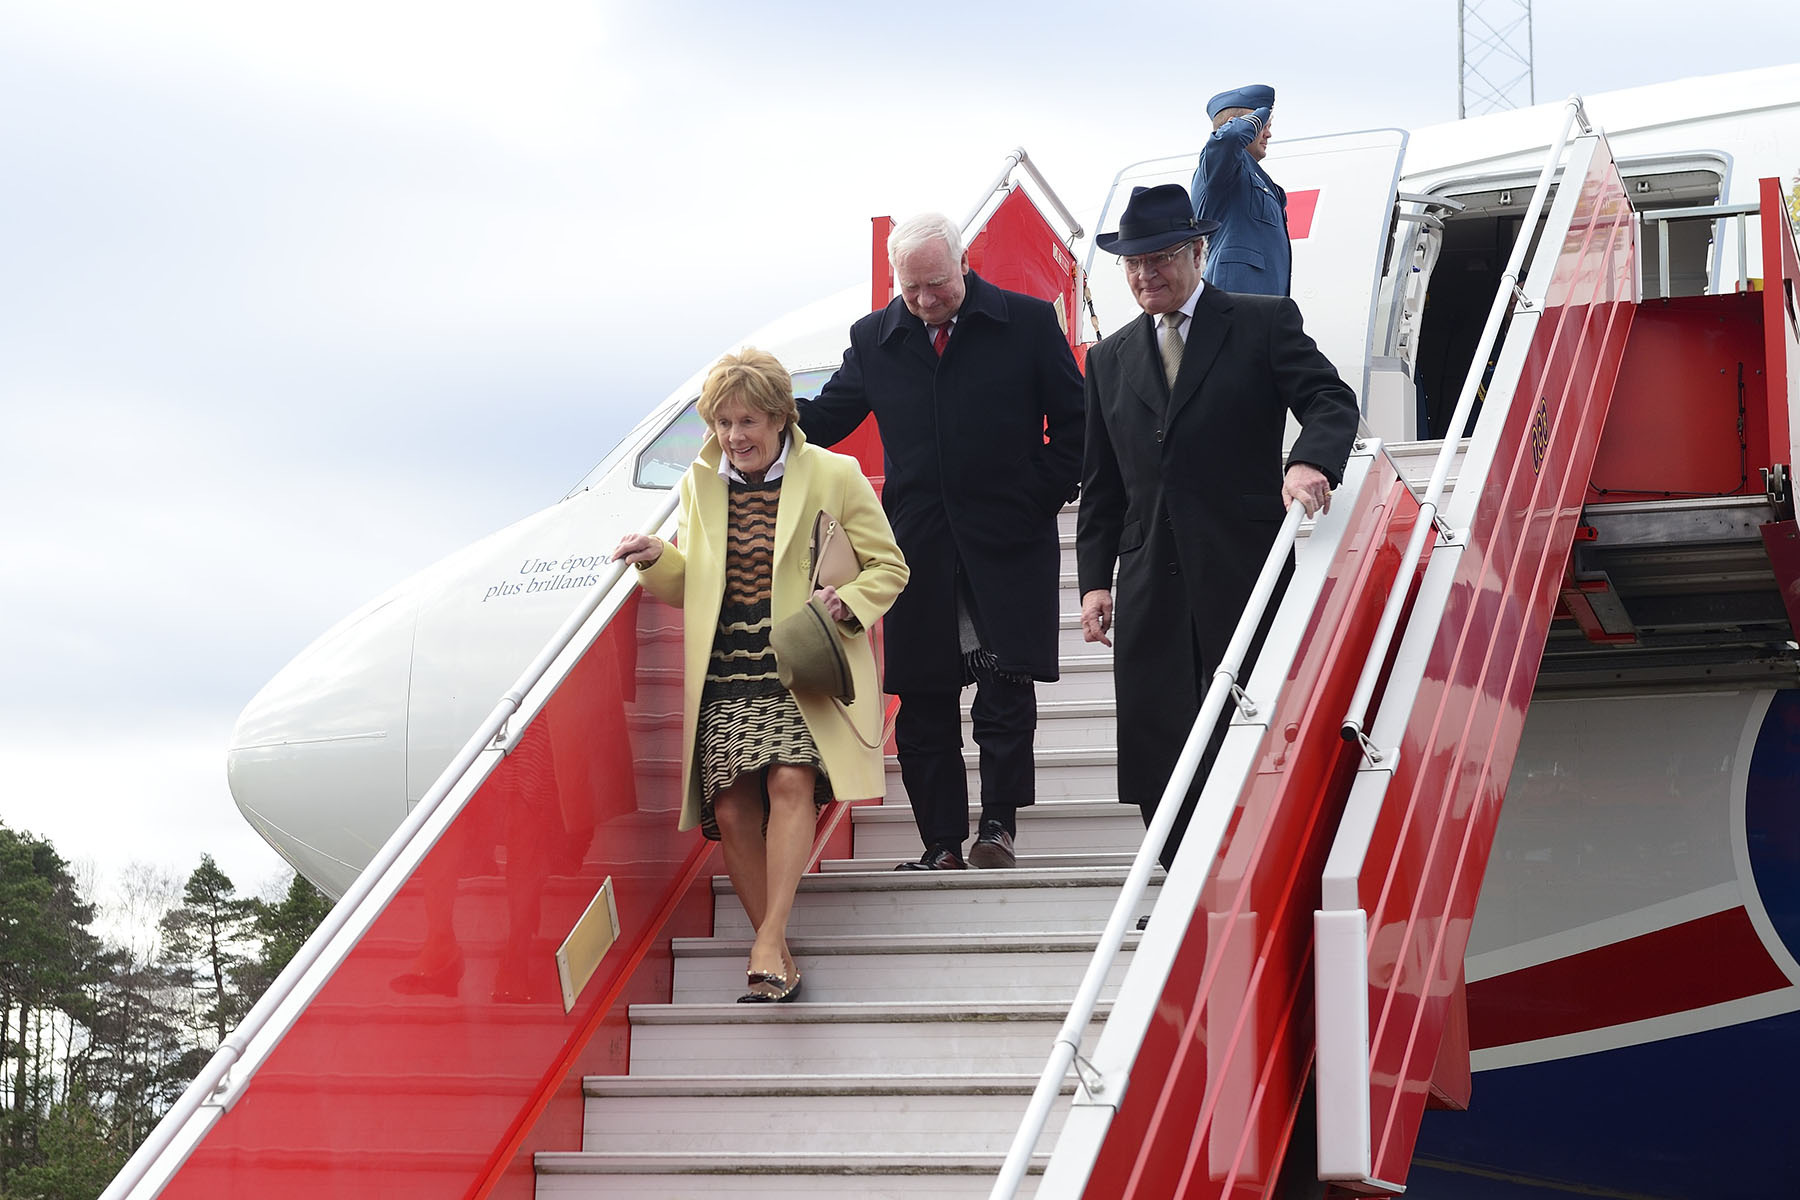 On the fourth day of the State visit to Sweden, Their Excellencies and Canadian delegates travelled to Gothenburg.